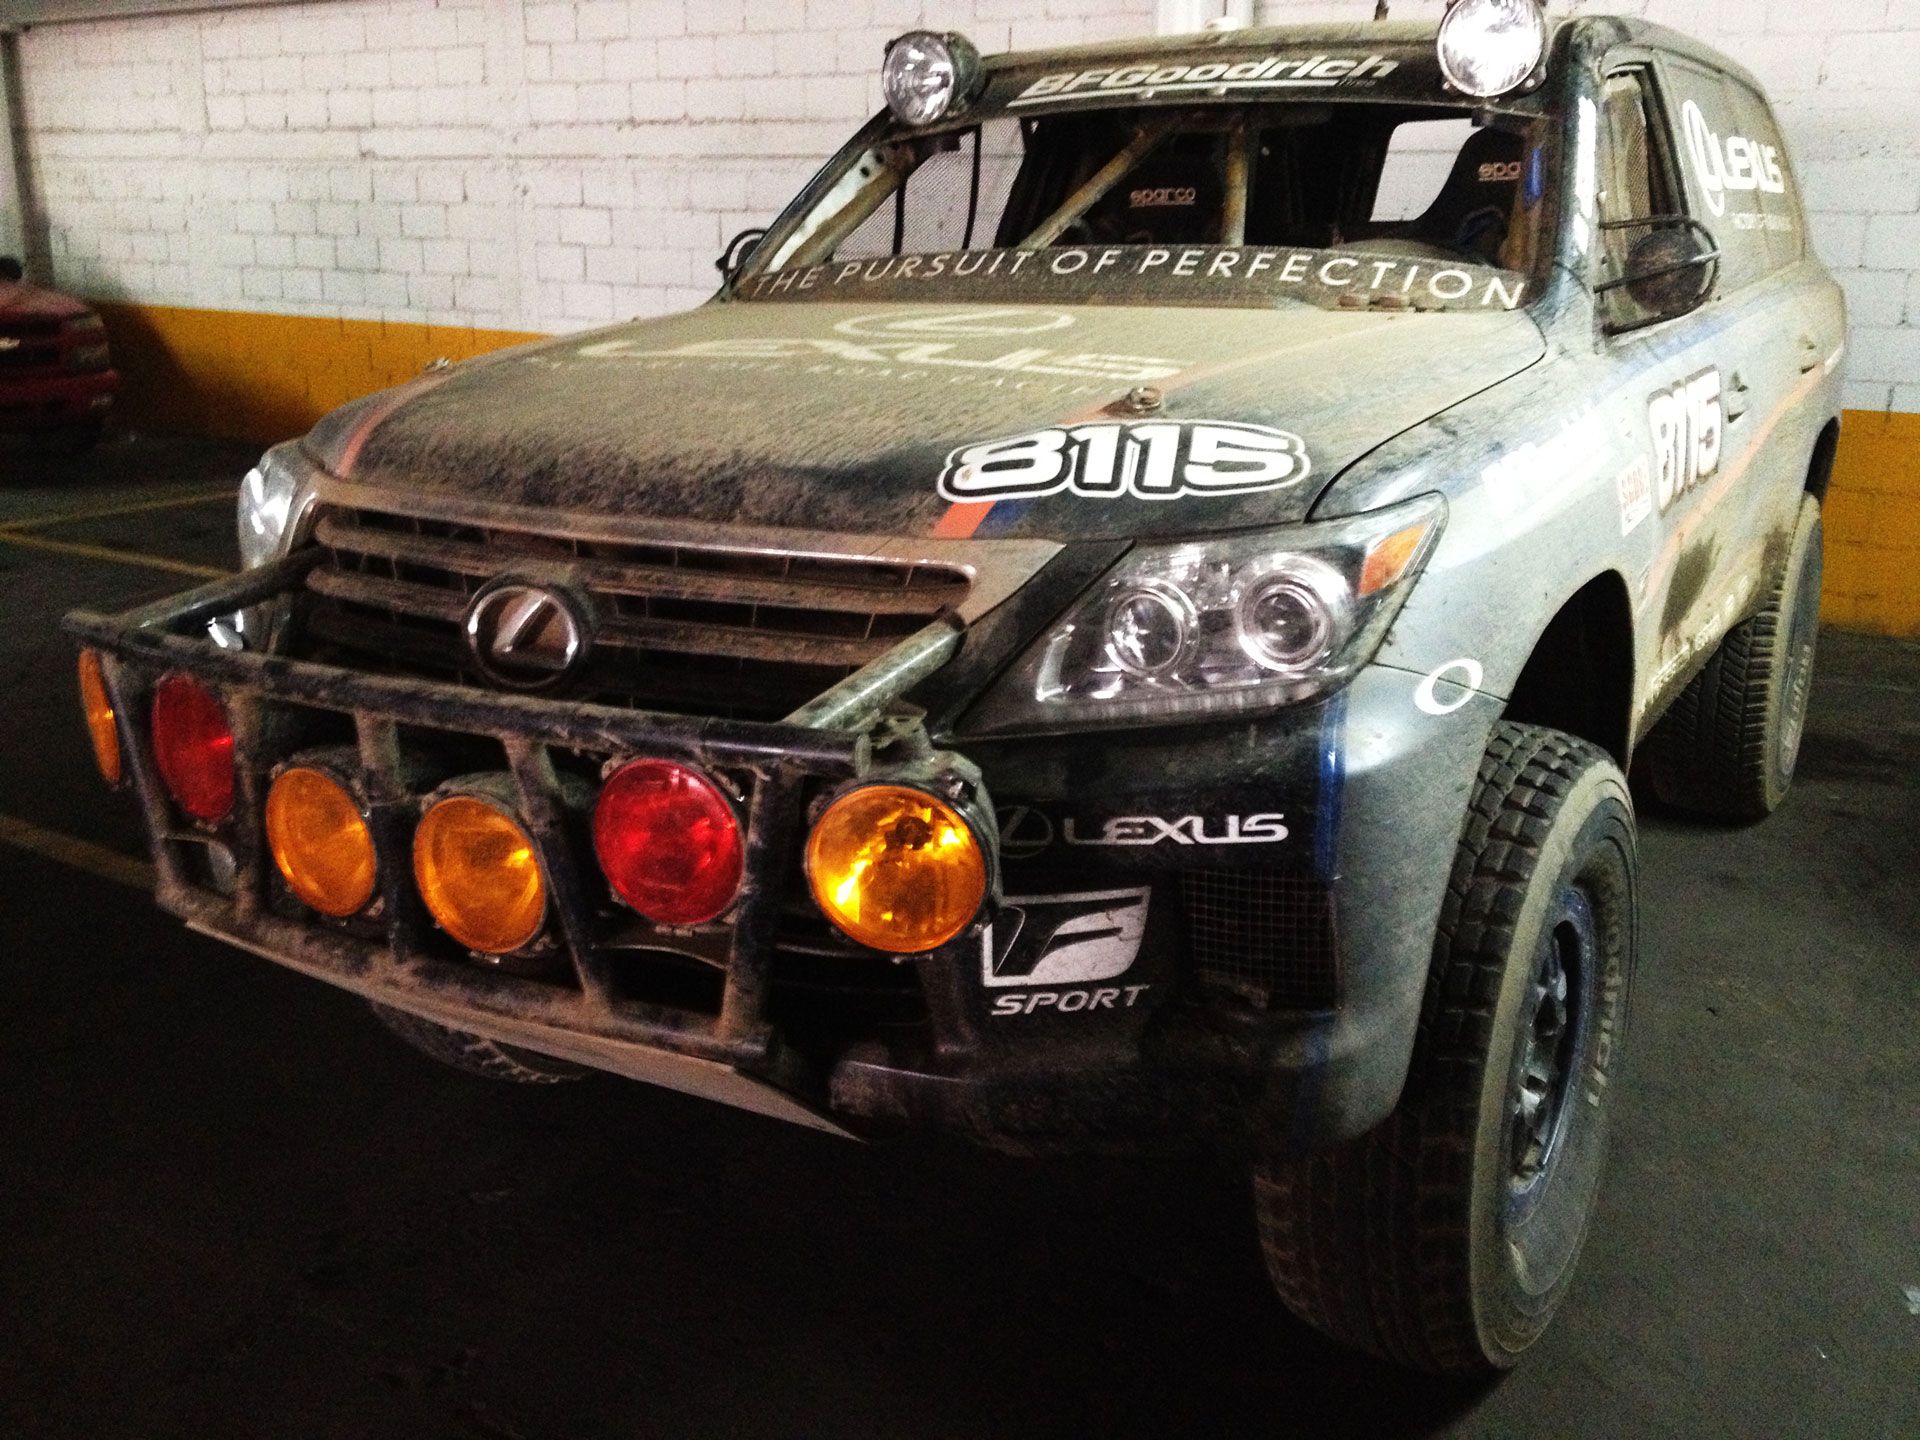 So who do you think was faster at the Baja 500? - lexus 2013 baja 500 11